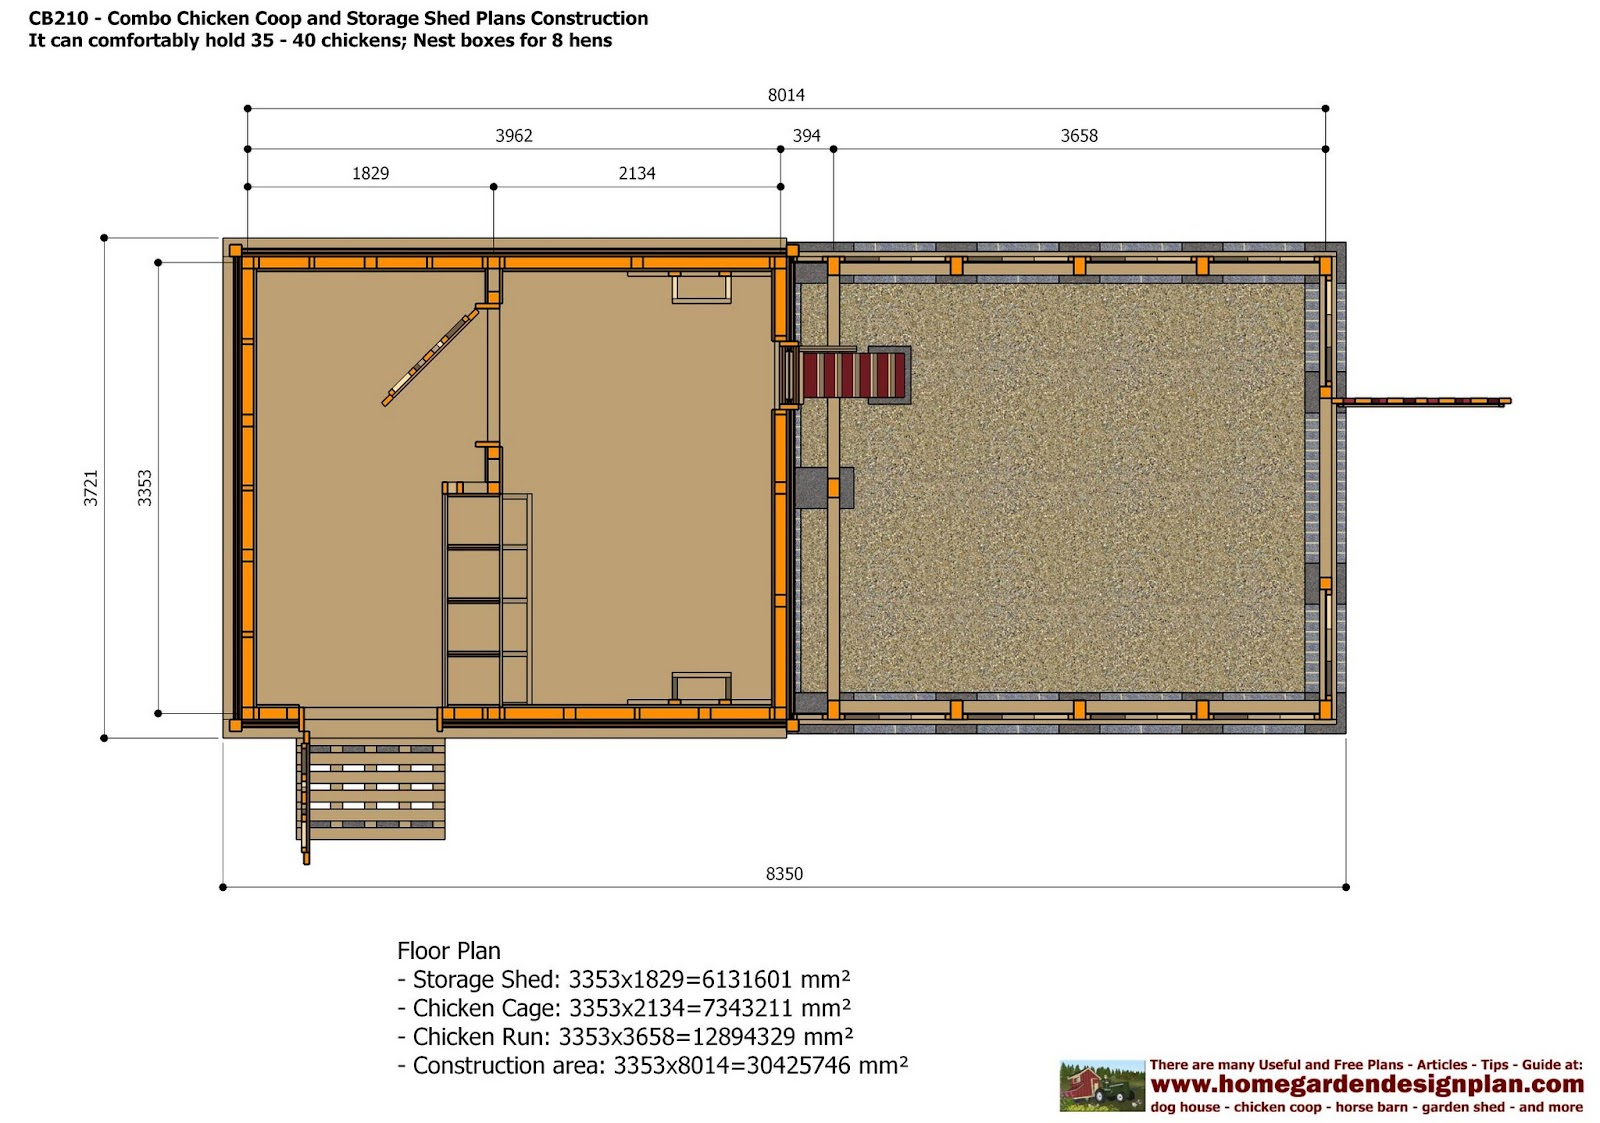 Home garden plans cb210 combo plans chicken coop for Dog kennel shed combo plans